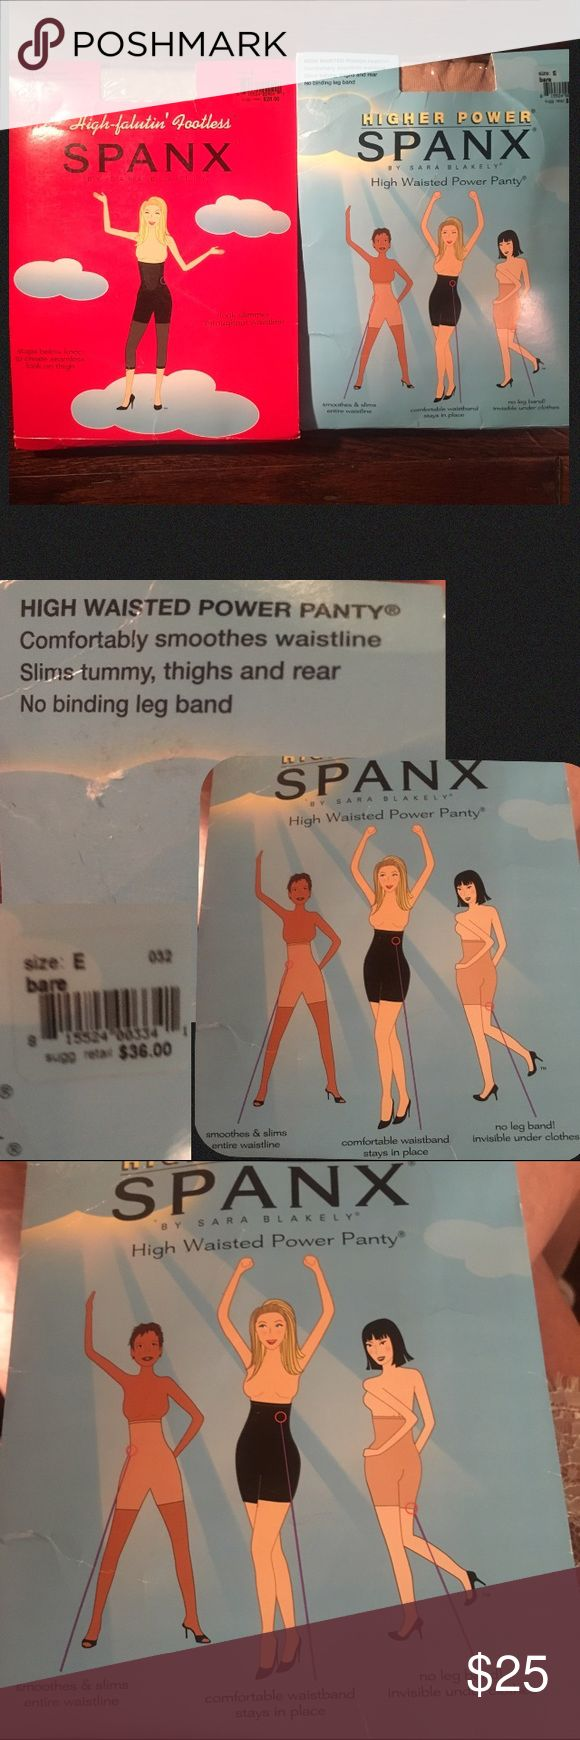 SPANX 1 pair high power, high waisted power panty, smooths & slims,comfortable stay in place waist band, color: bare size E. -1 pair High faluting footless, stops below the knee to create a seamless look on thigh, slimmer waist line.-color buff size E. NWT in packing, never worn. $66 retail price SALE both pairs $45 or $25 each.😊or make an offer. SIZE CHART ON LAST PICTURE SPANX Intimates & Sleepwear Shapewear